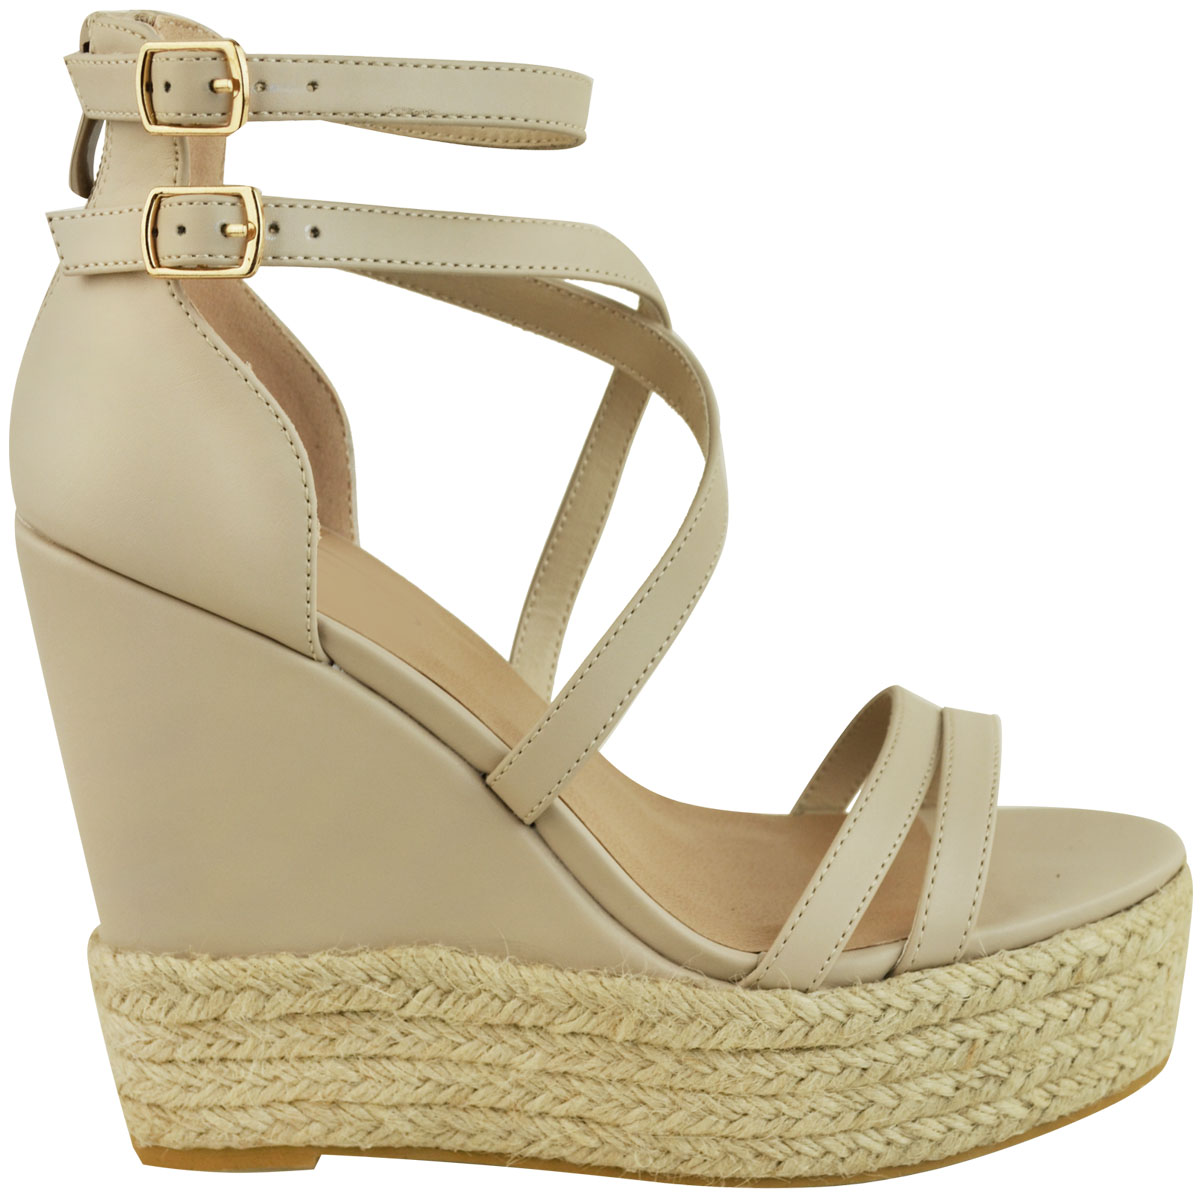 New-Womens-Ladies-Wedge-Espadrille-Sandals-Strappy-Rose-Gold-Summer-Shoes-Size thumbnail 19